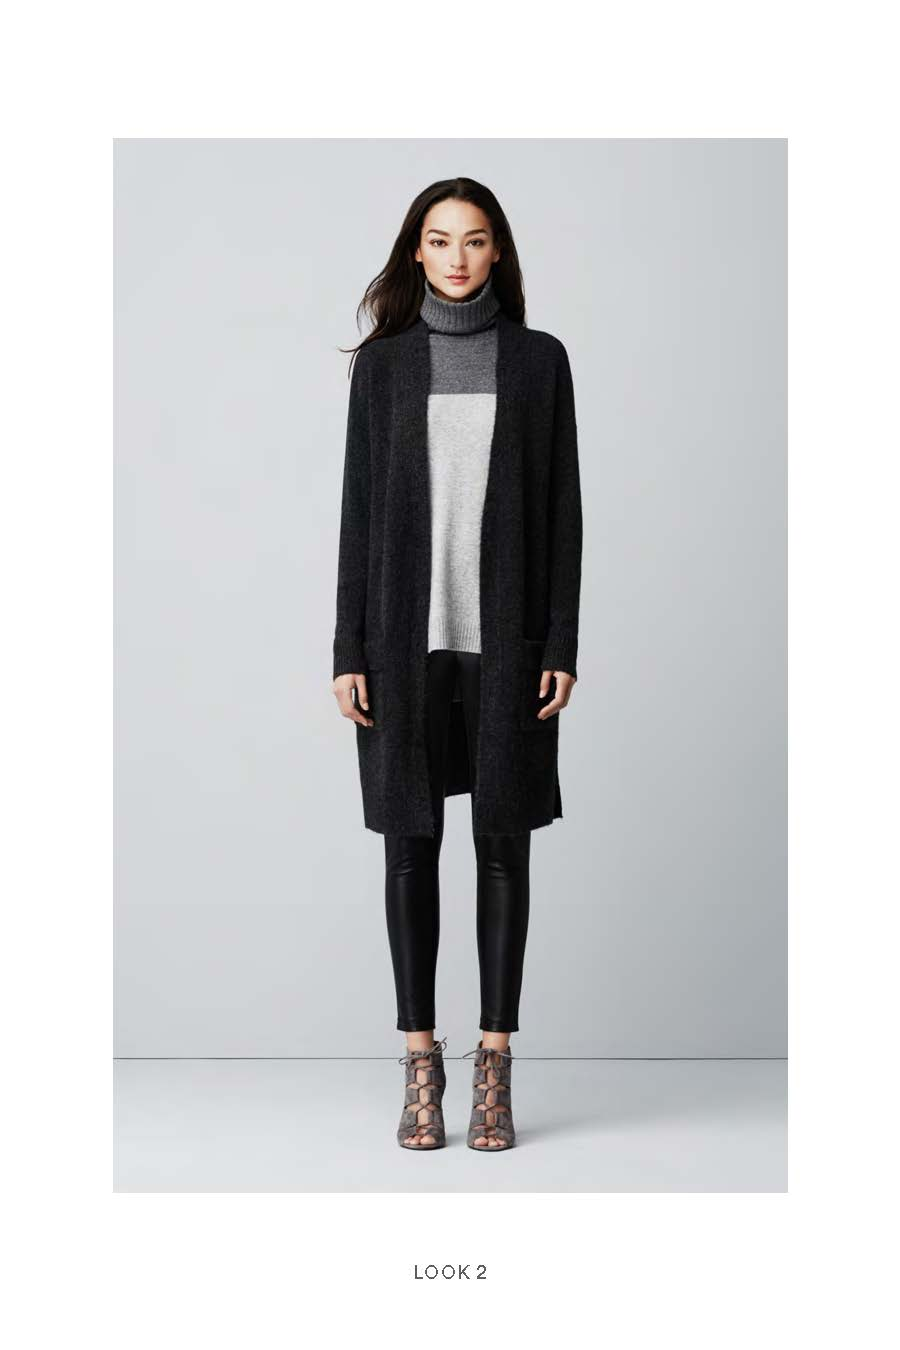 5bc54ae713 FIRST LOOK: Ann Taylor Winter 2015 Collection - NYC Recessionista